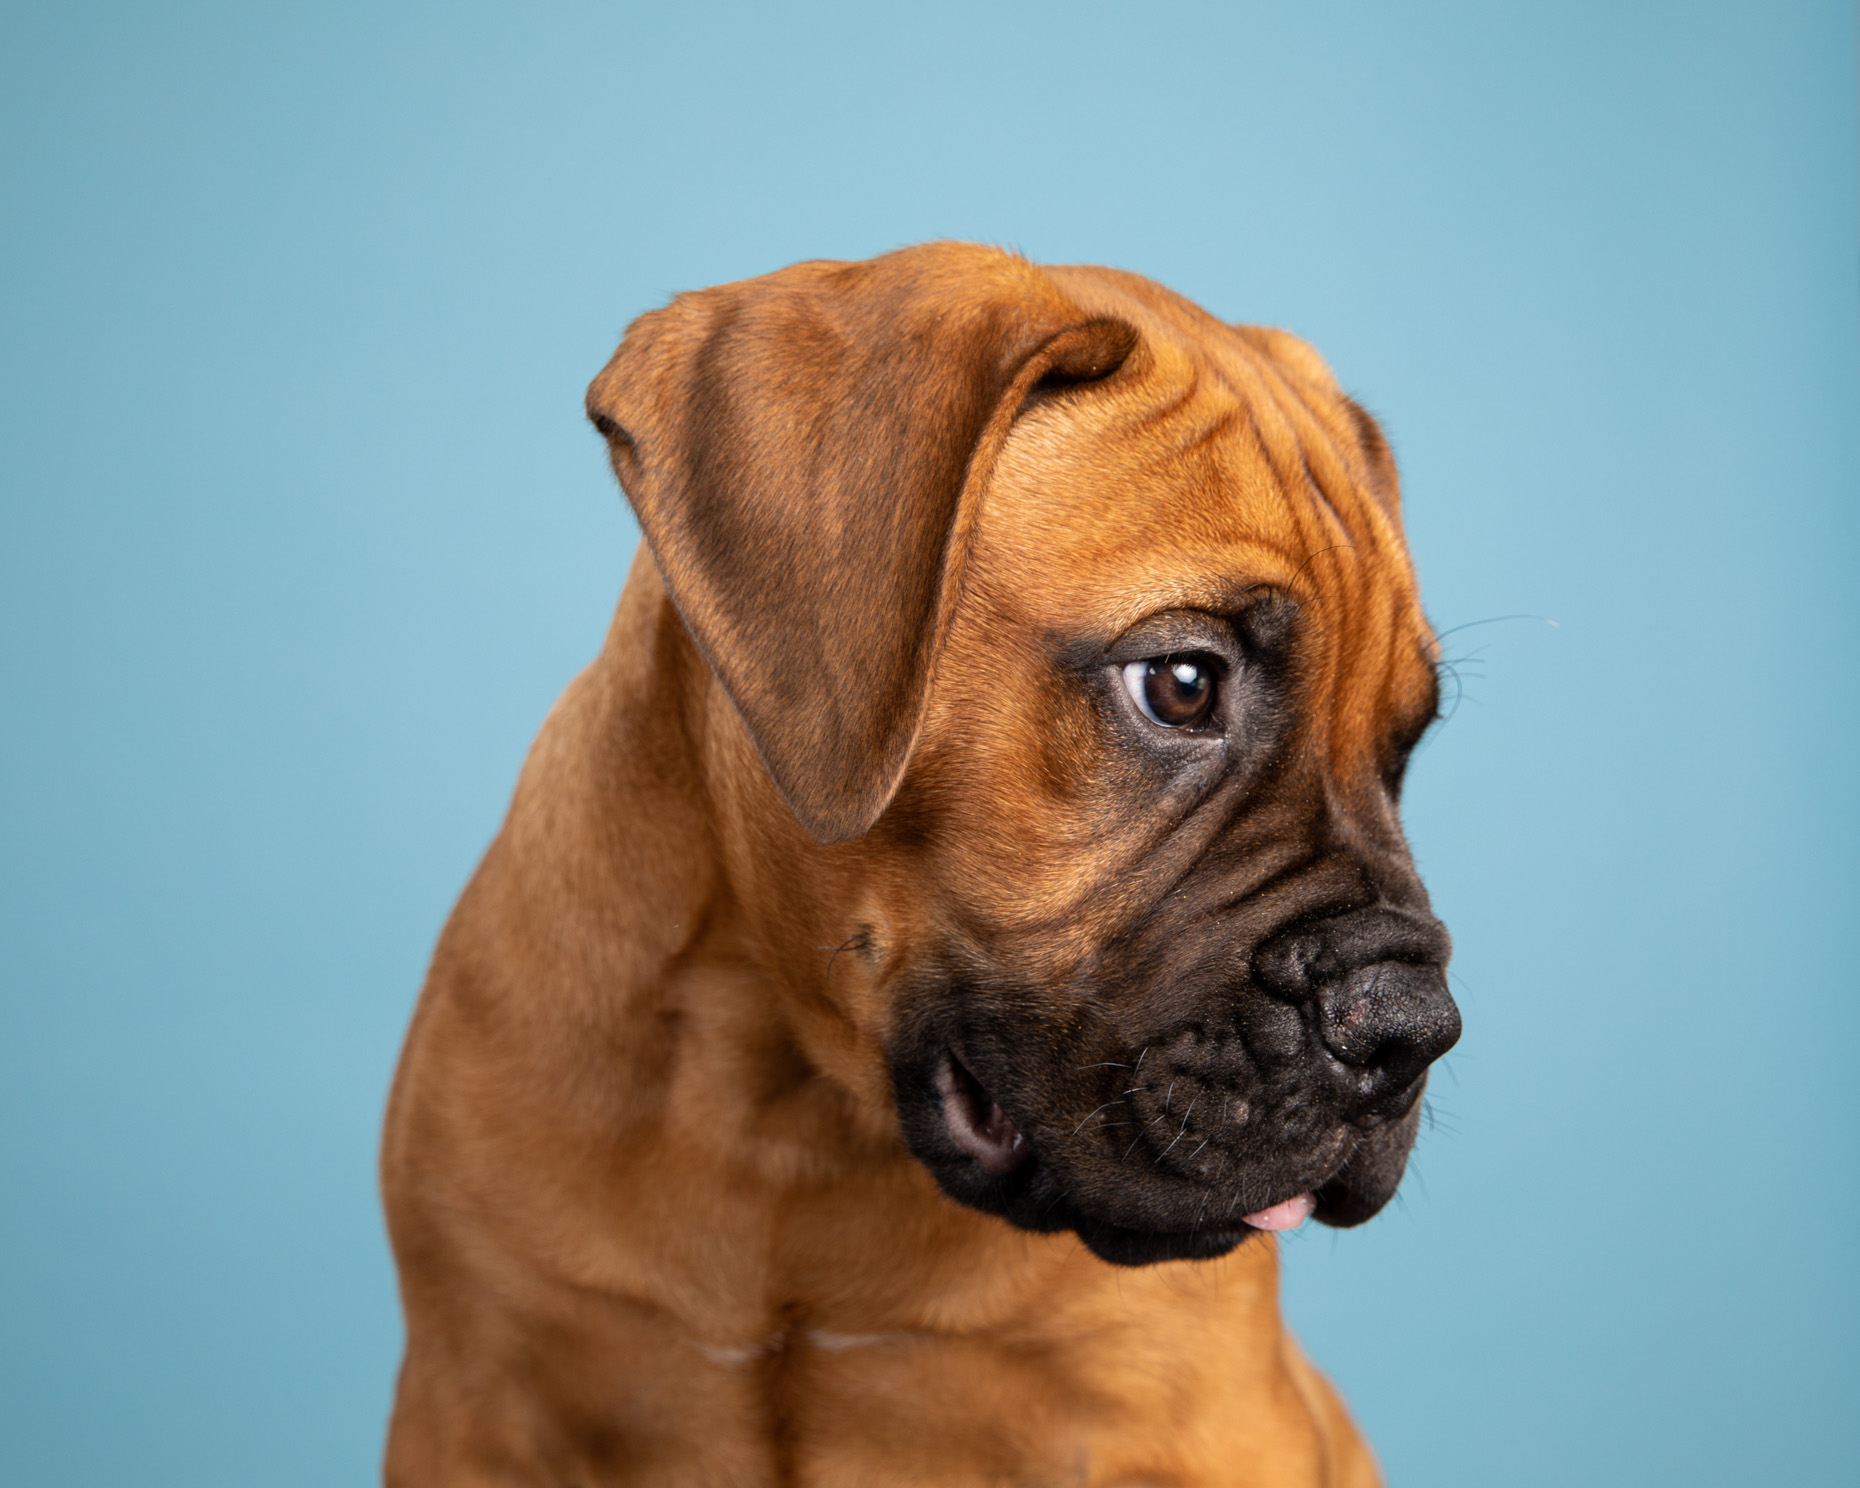 Pet Photography | Mastiff Puppy in Profile by Mark Rogers